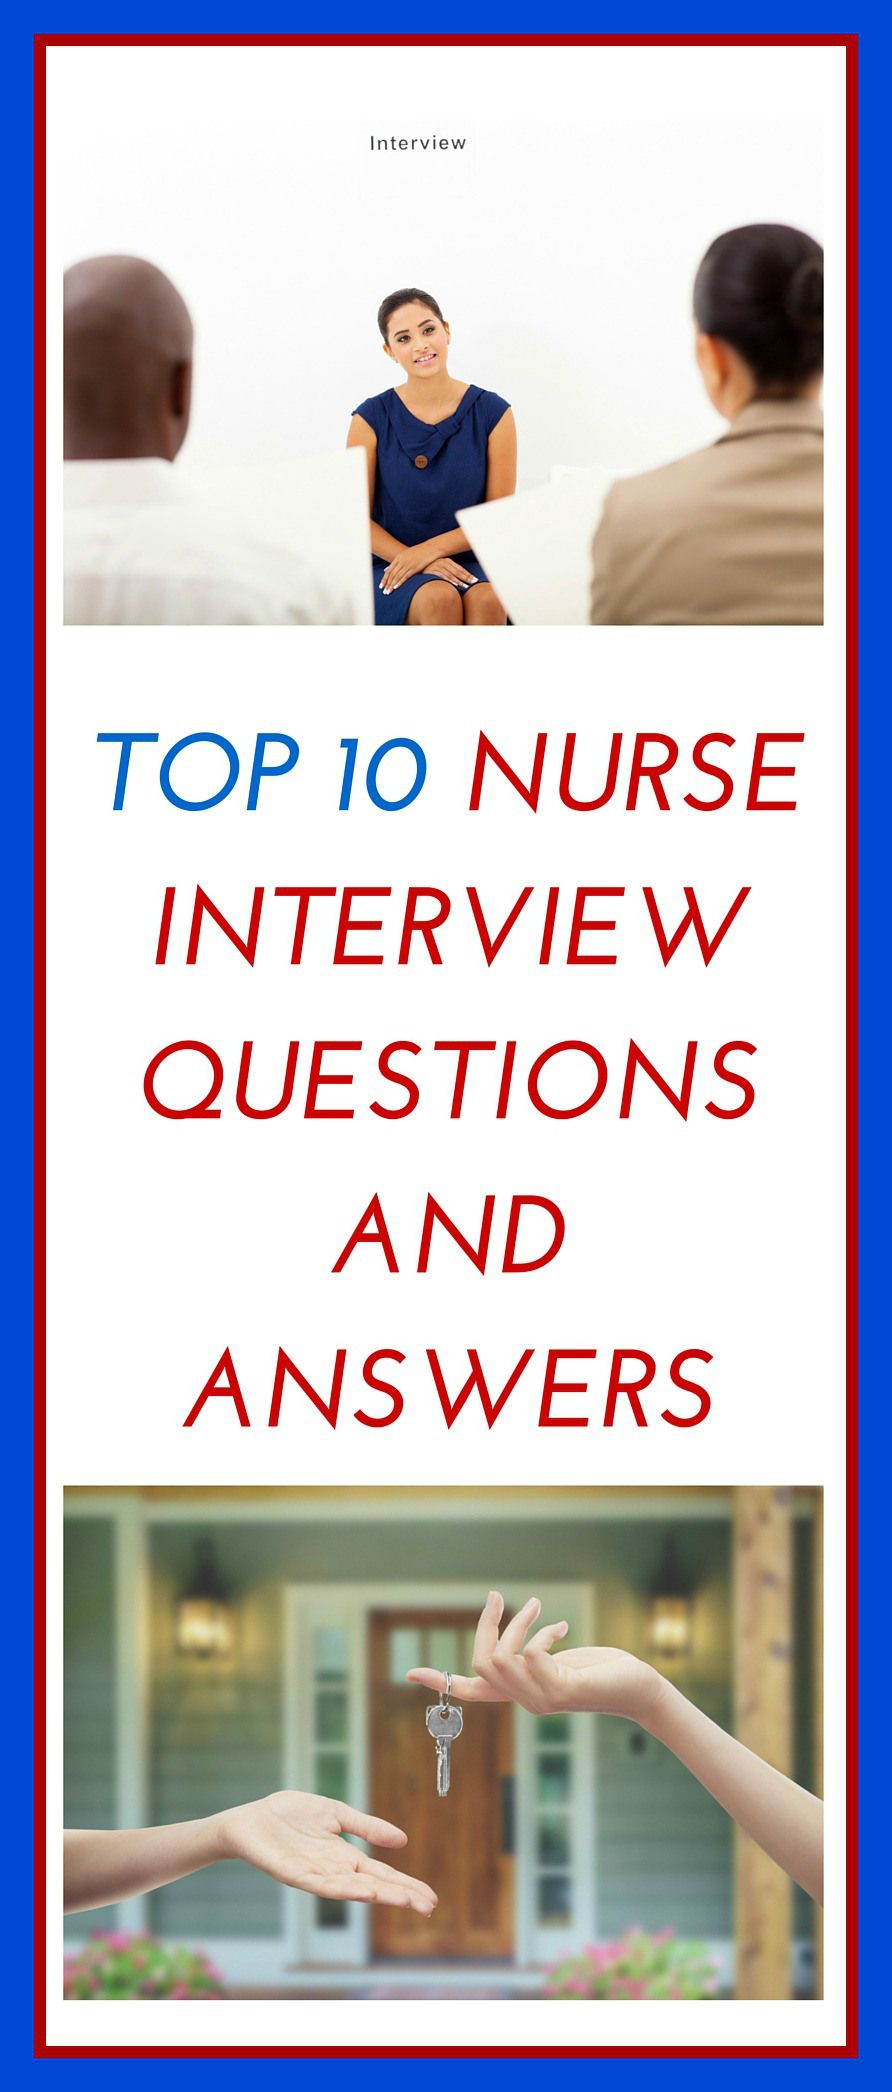 top nurse interview questions and answers interview question these are the top nurse interview questions and answers these top nurse interview questions are from a recent poll asked of over new grad nurses on a pr